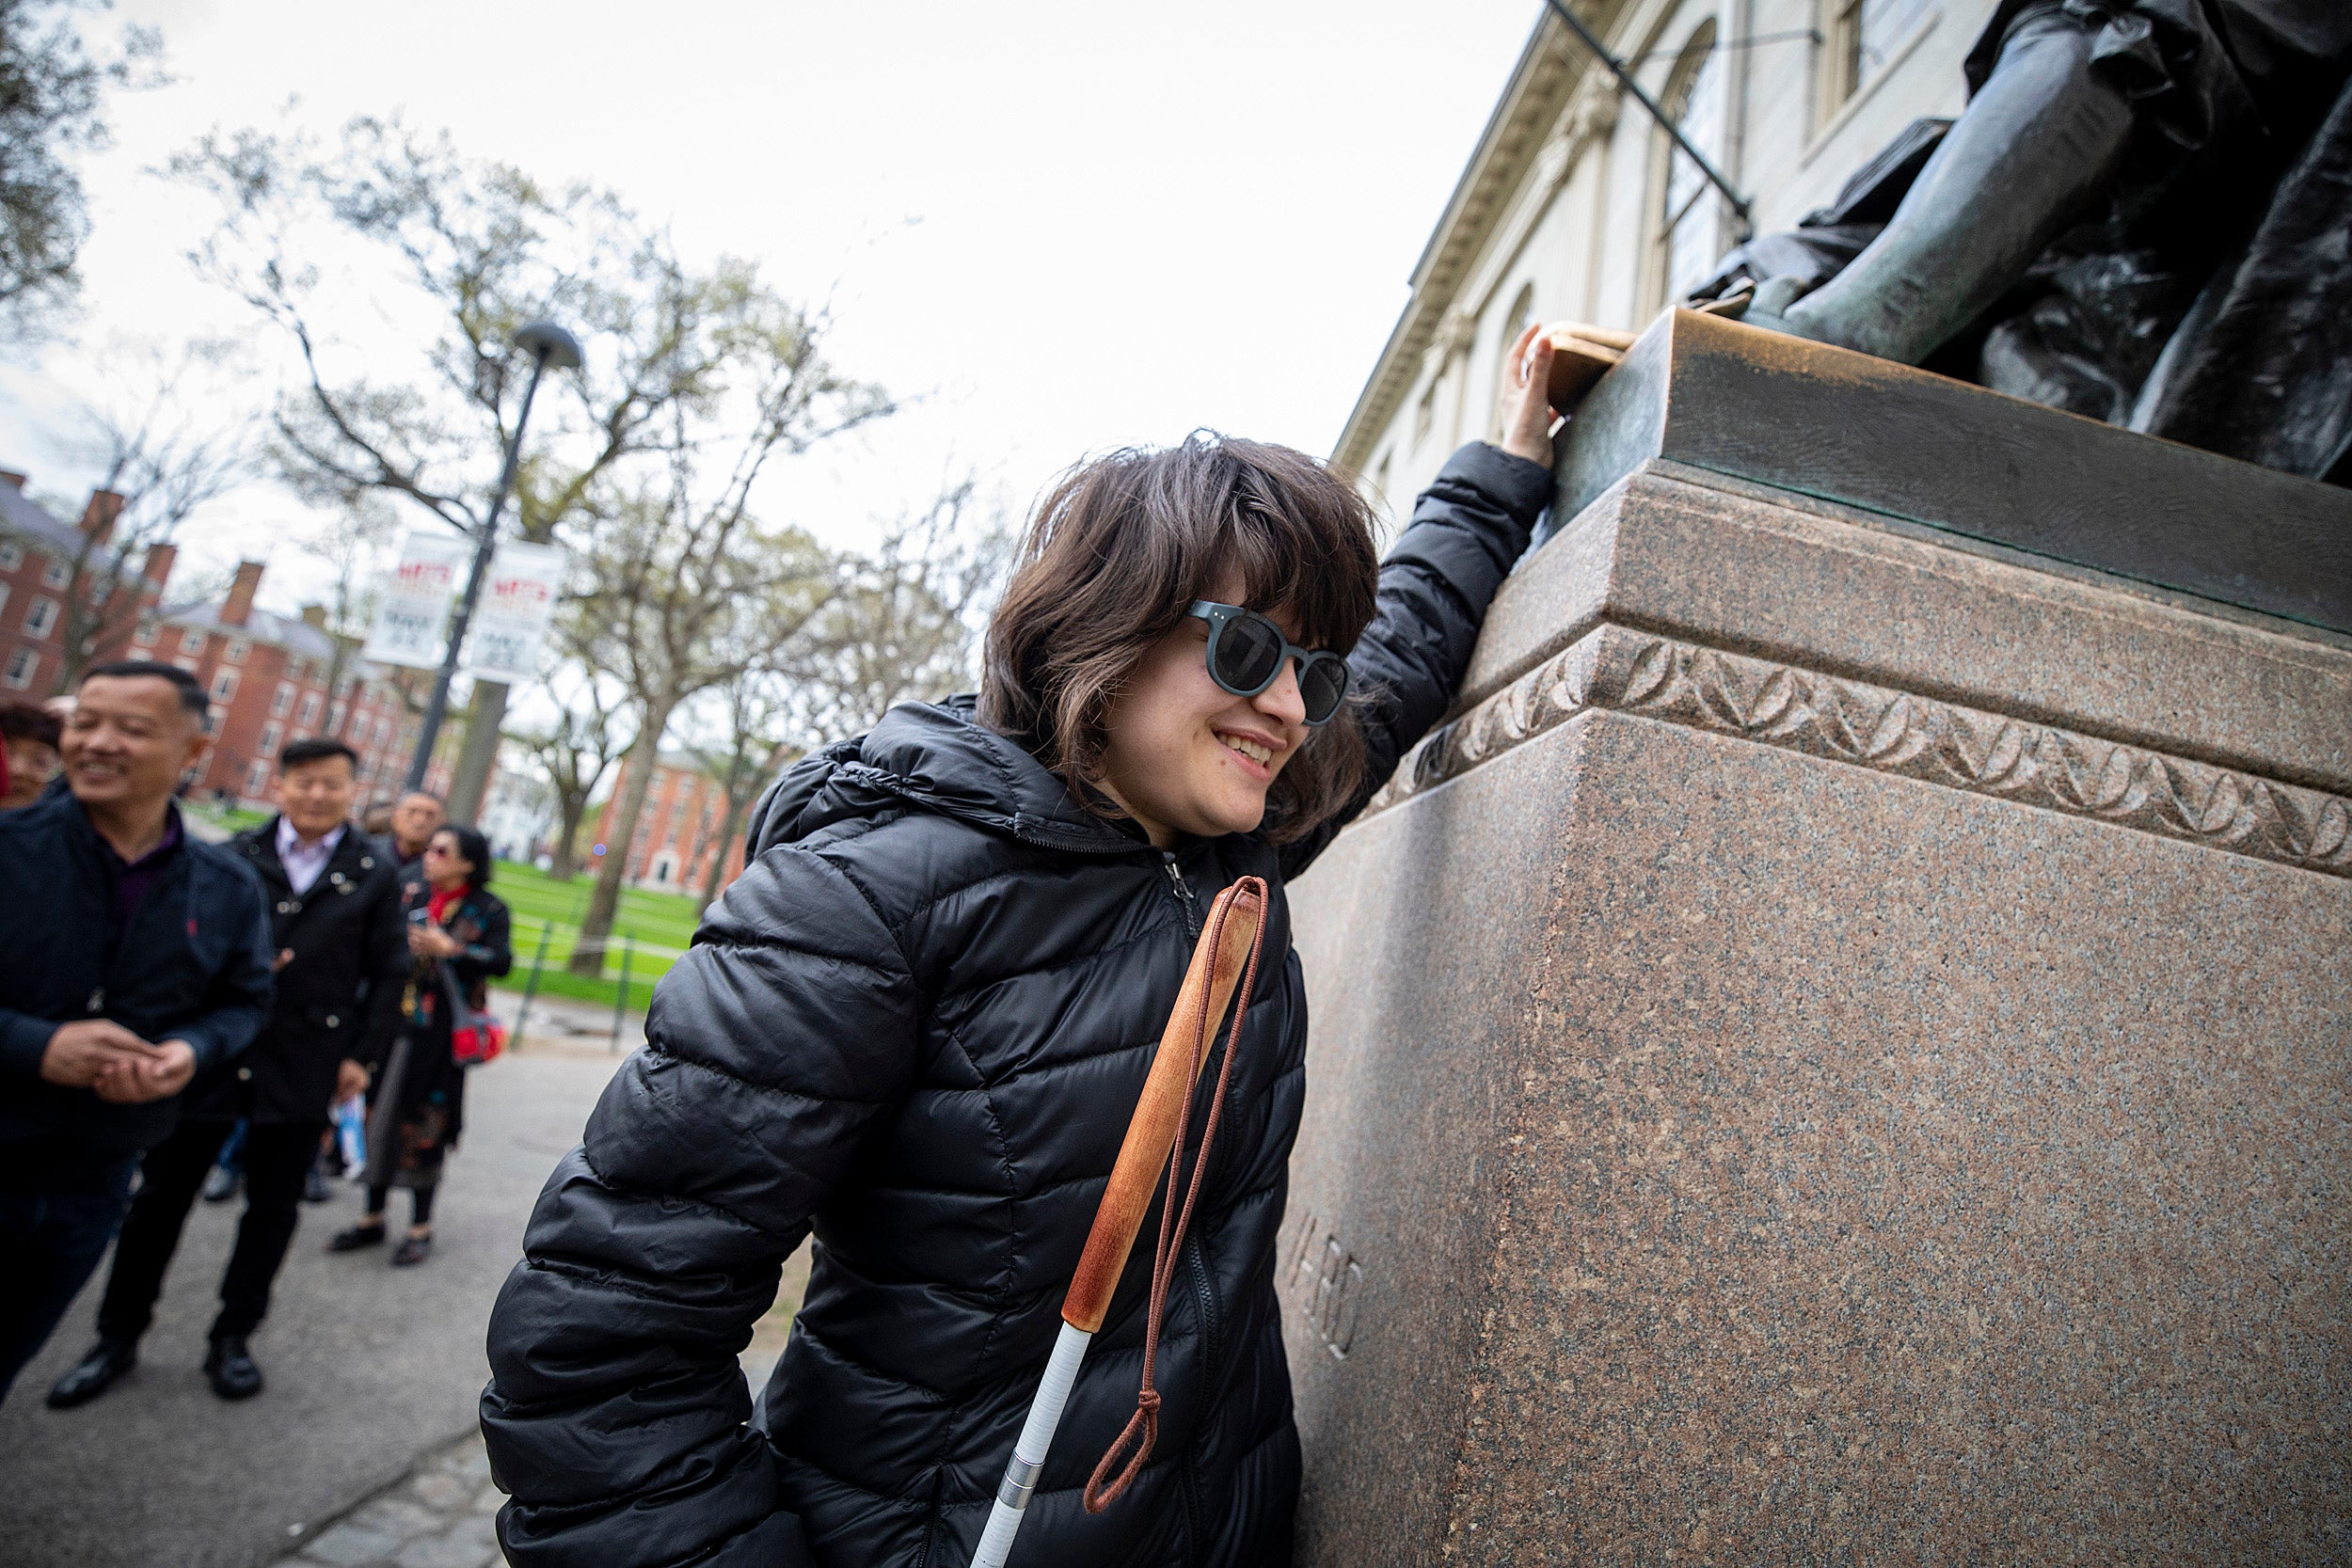 Jordan Scheffer touches the John Harvard statue.